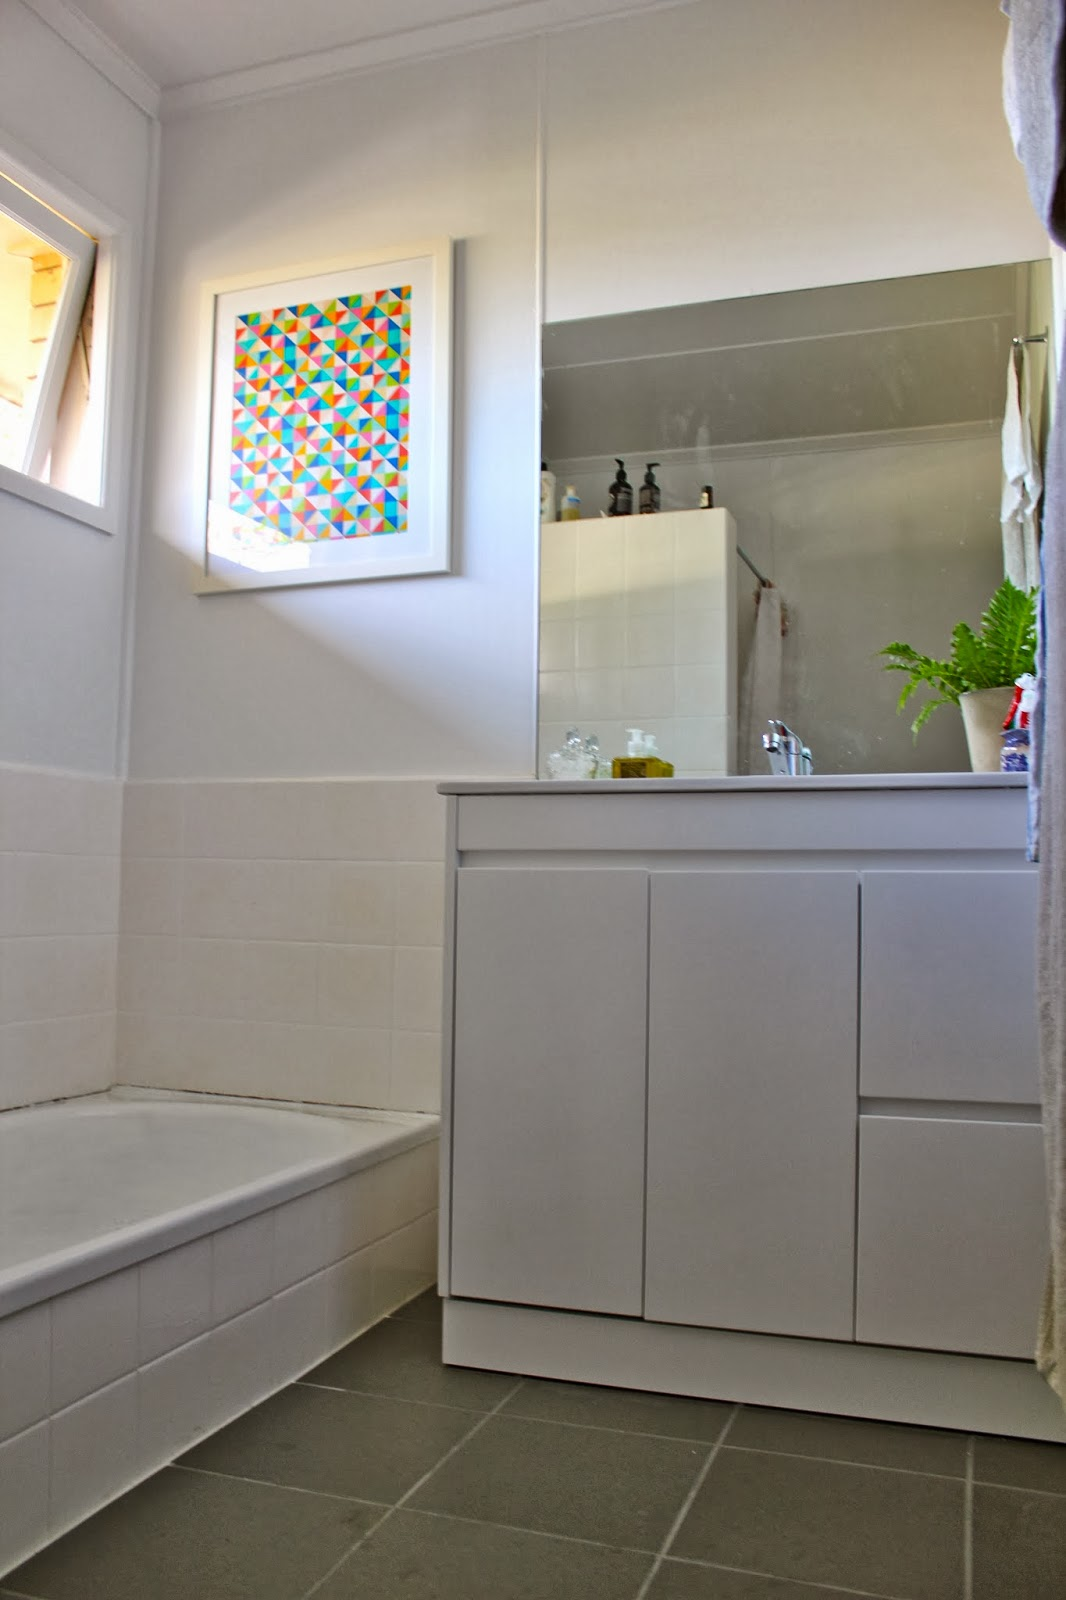 Bunnings Bathrooms Vanity Thom Haus Handmade A Simple Budget Bathroom Makeover For